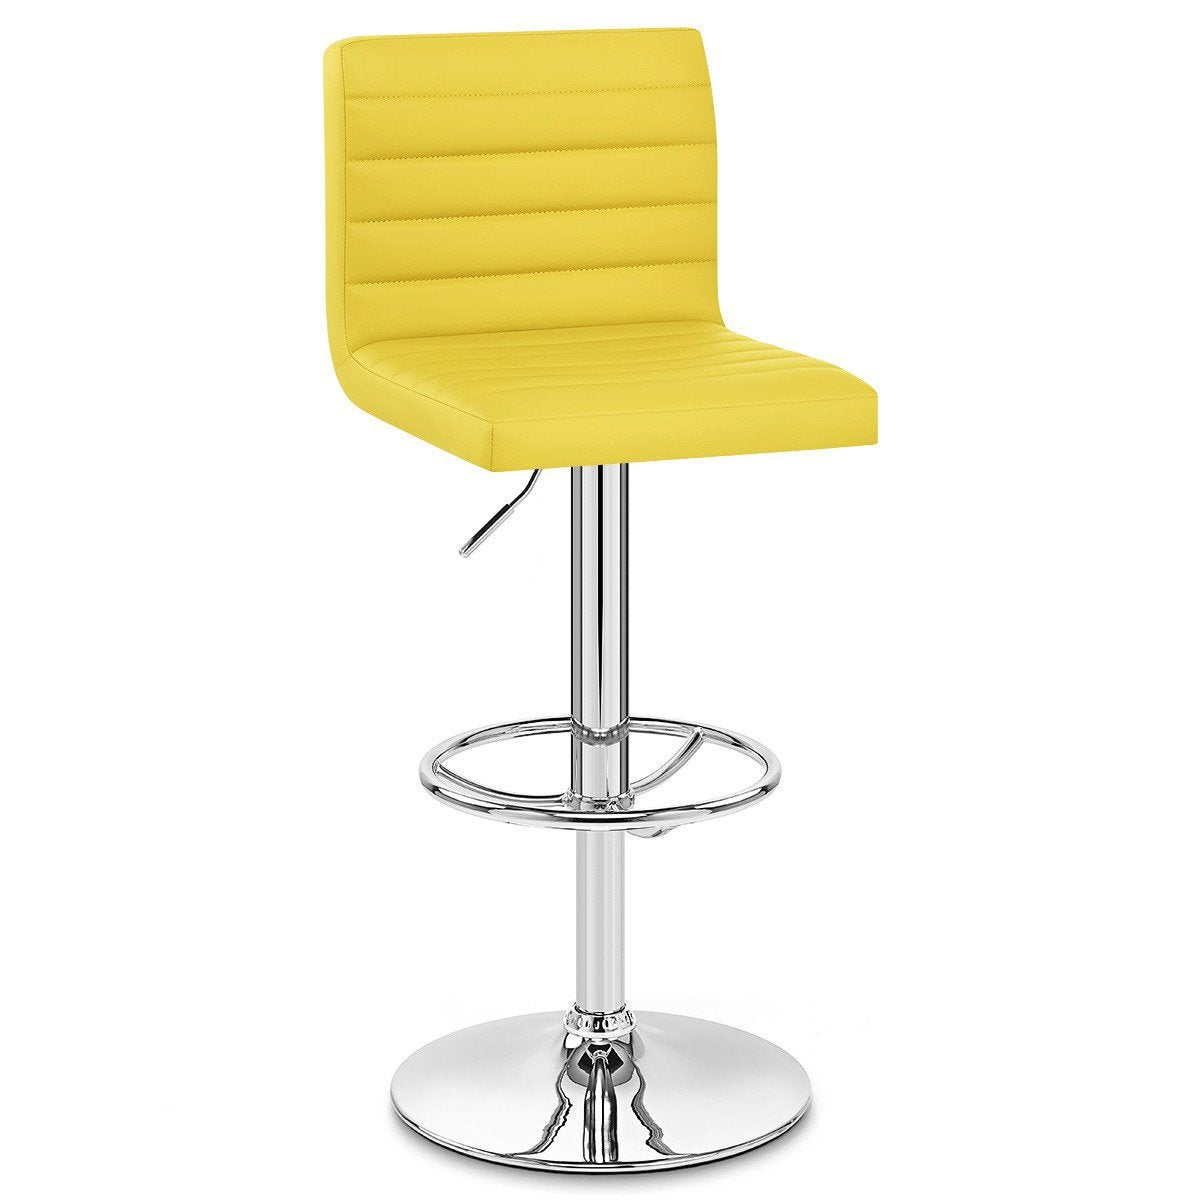 Tabouret de bar design, simili cuir, jaune, Mint | Leroy Merlin